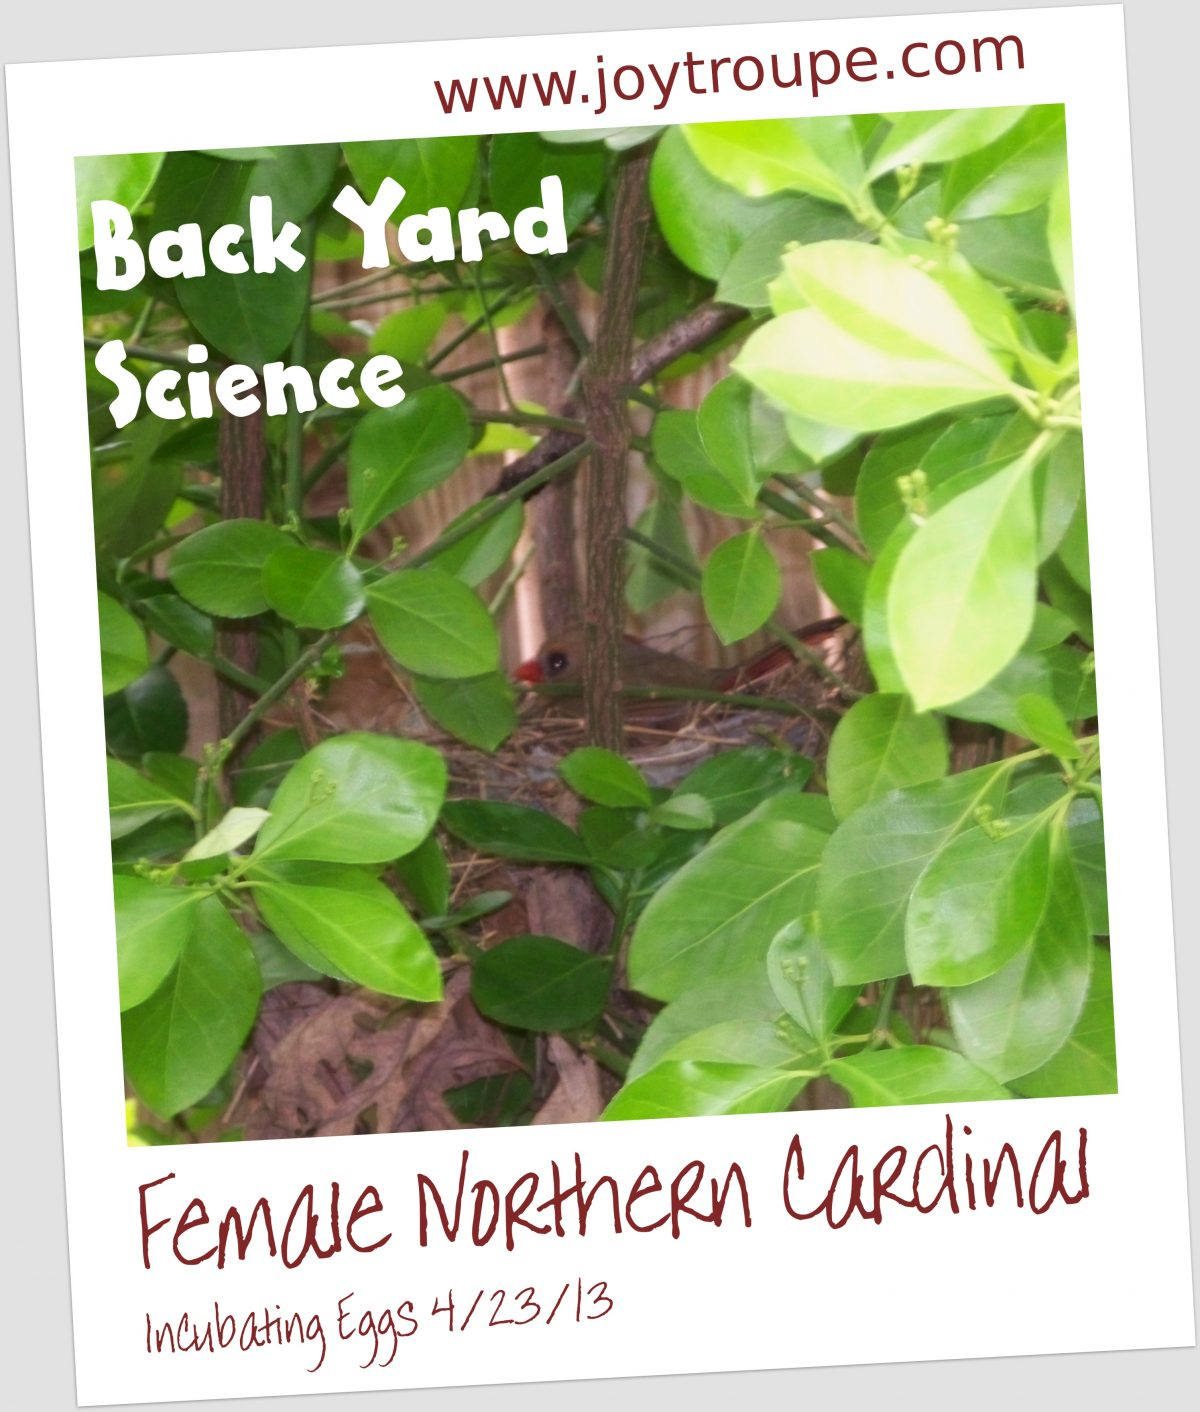 backyardsciencecardinalmama